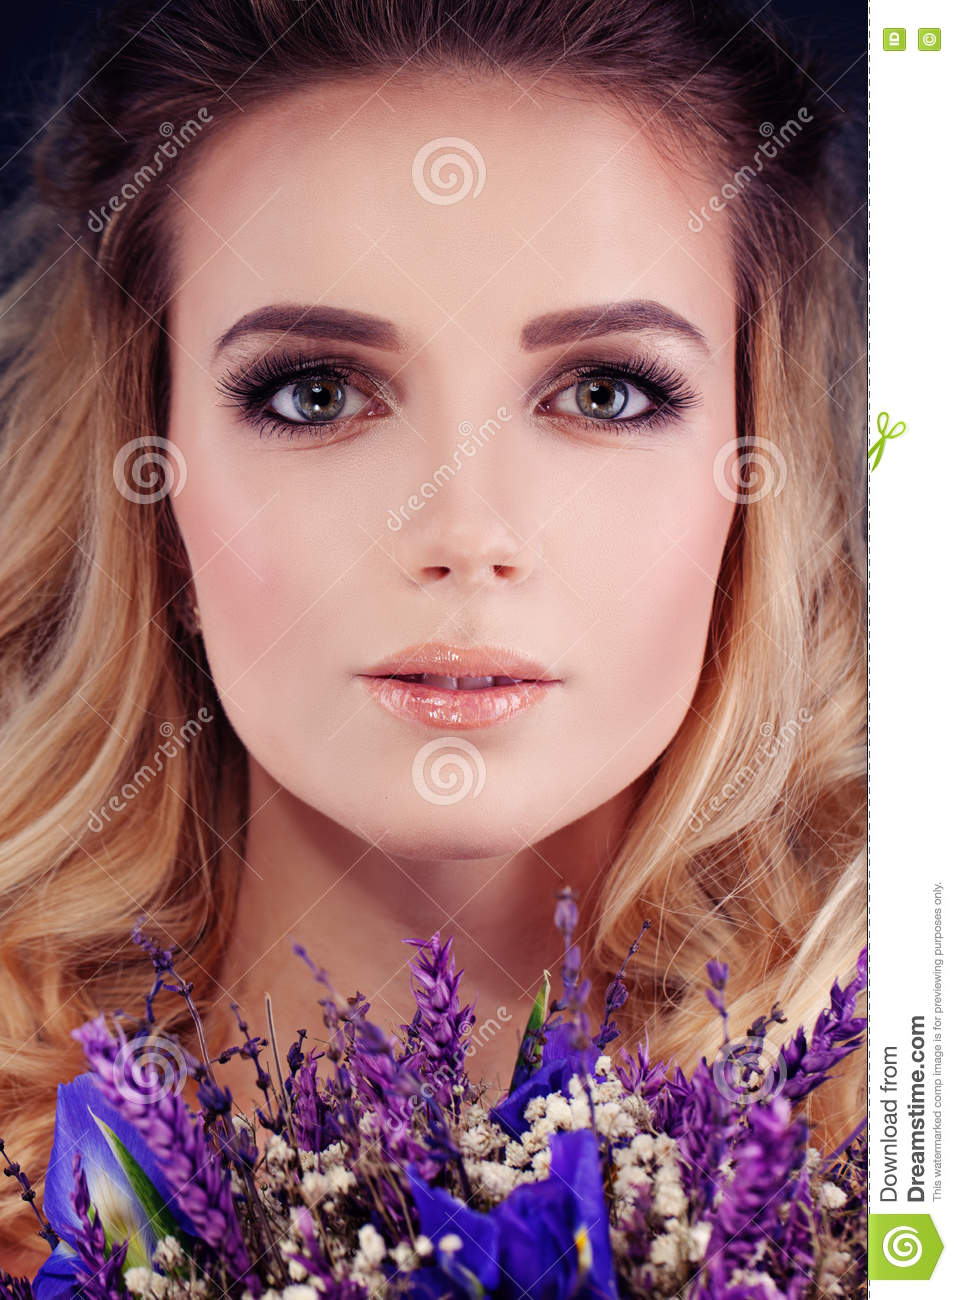 Beautiful Woman with Flowers. Cute Face Closeup